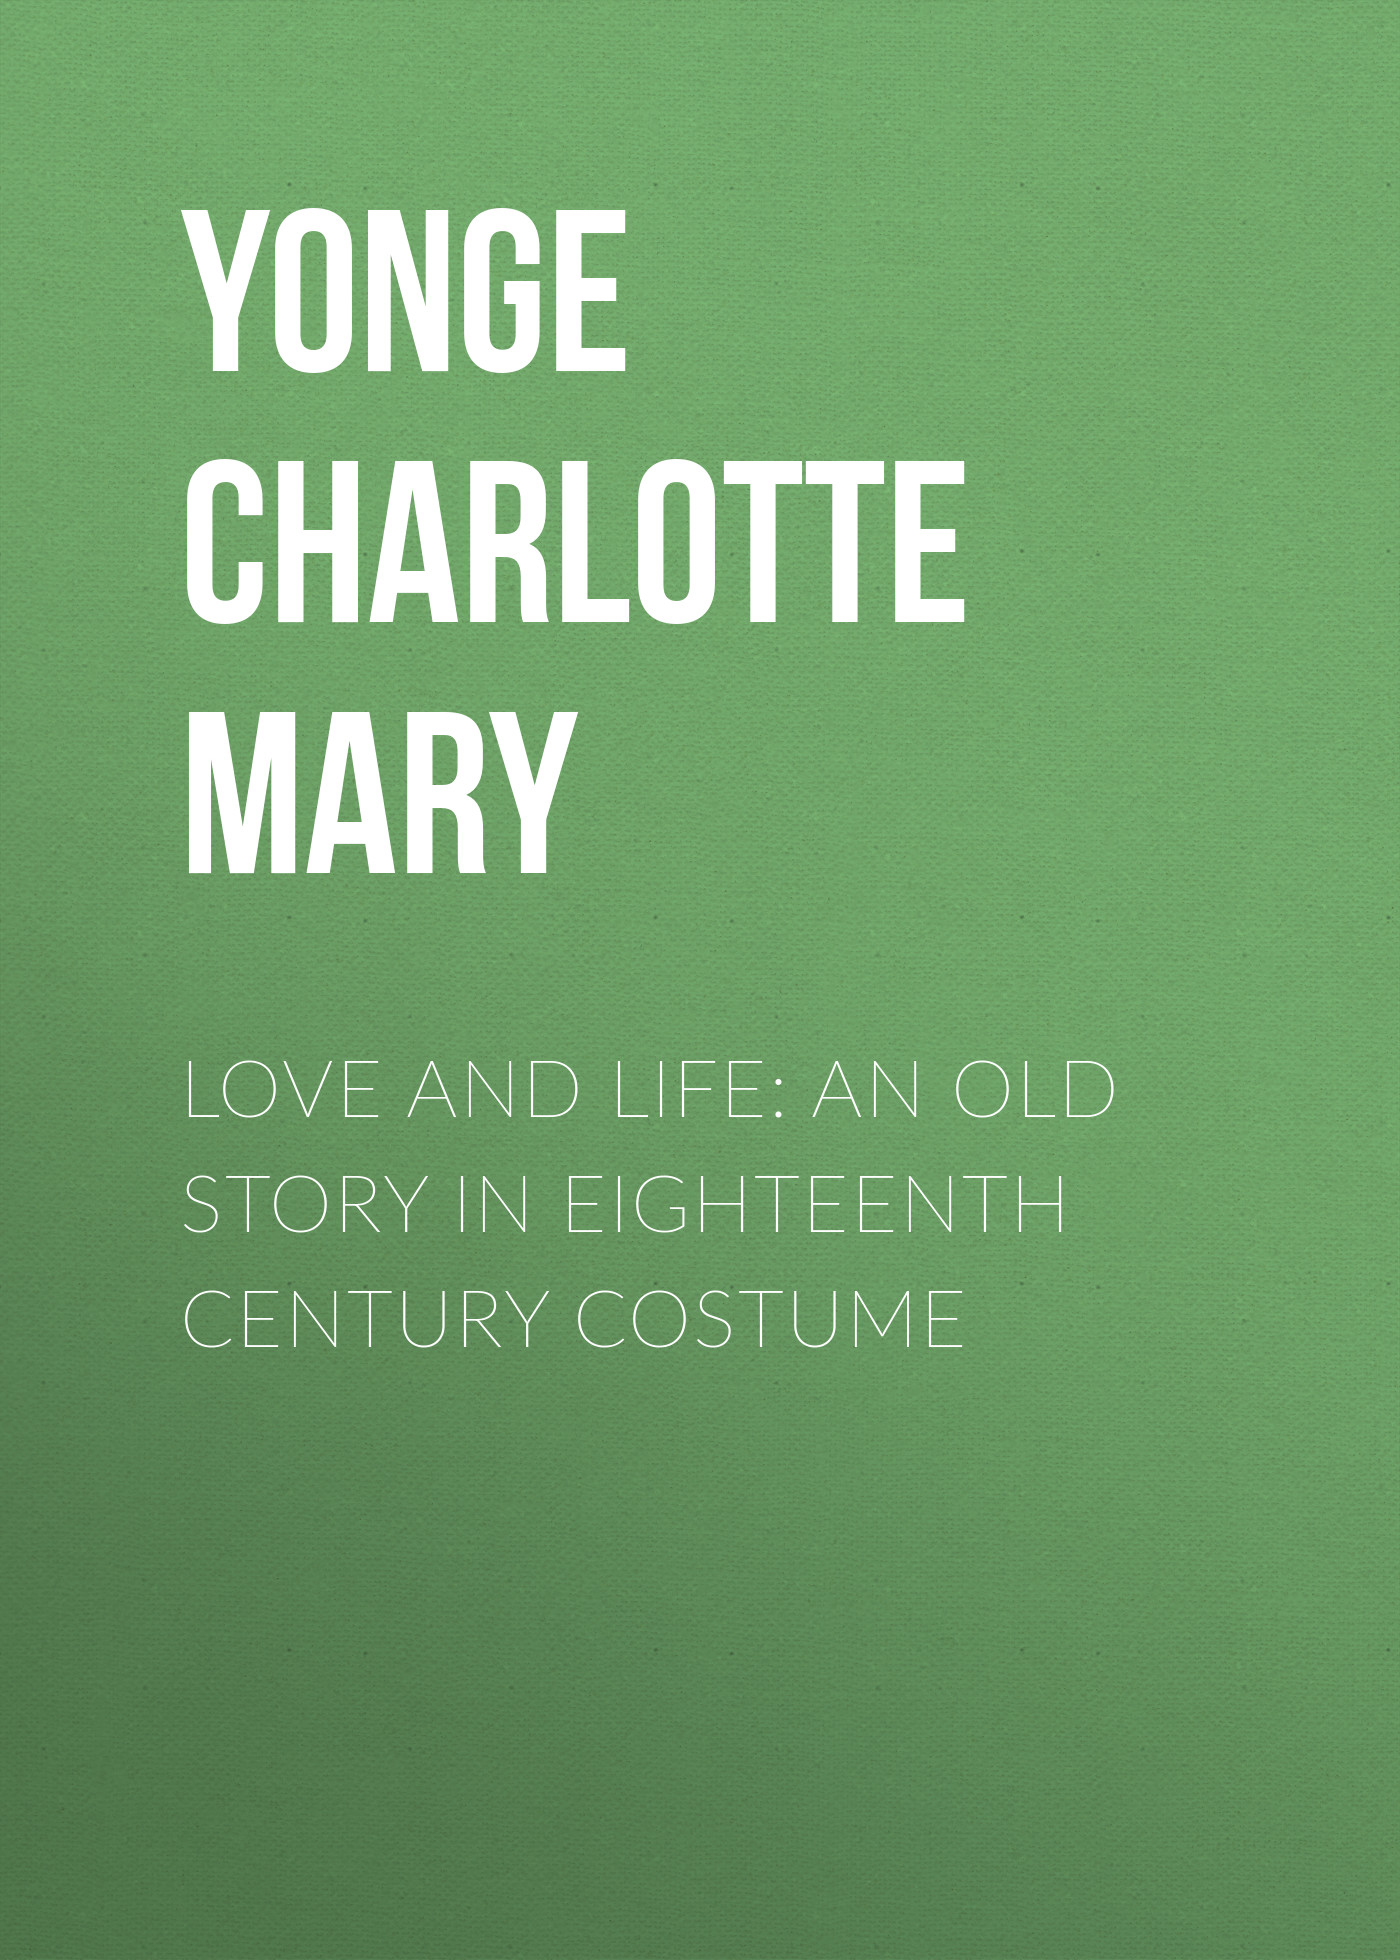 Yonge Charlotte Mary Love and Life: An Old Story in Eighteenth Century Costume вокруг стен древнего города 2019 05 02t12 00